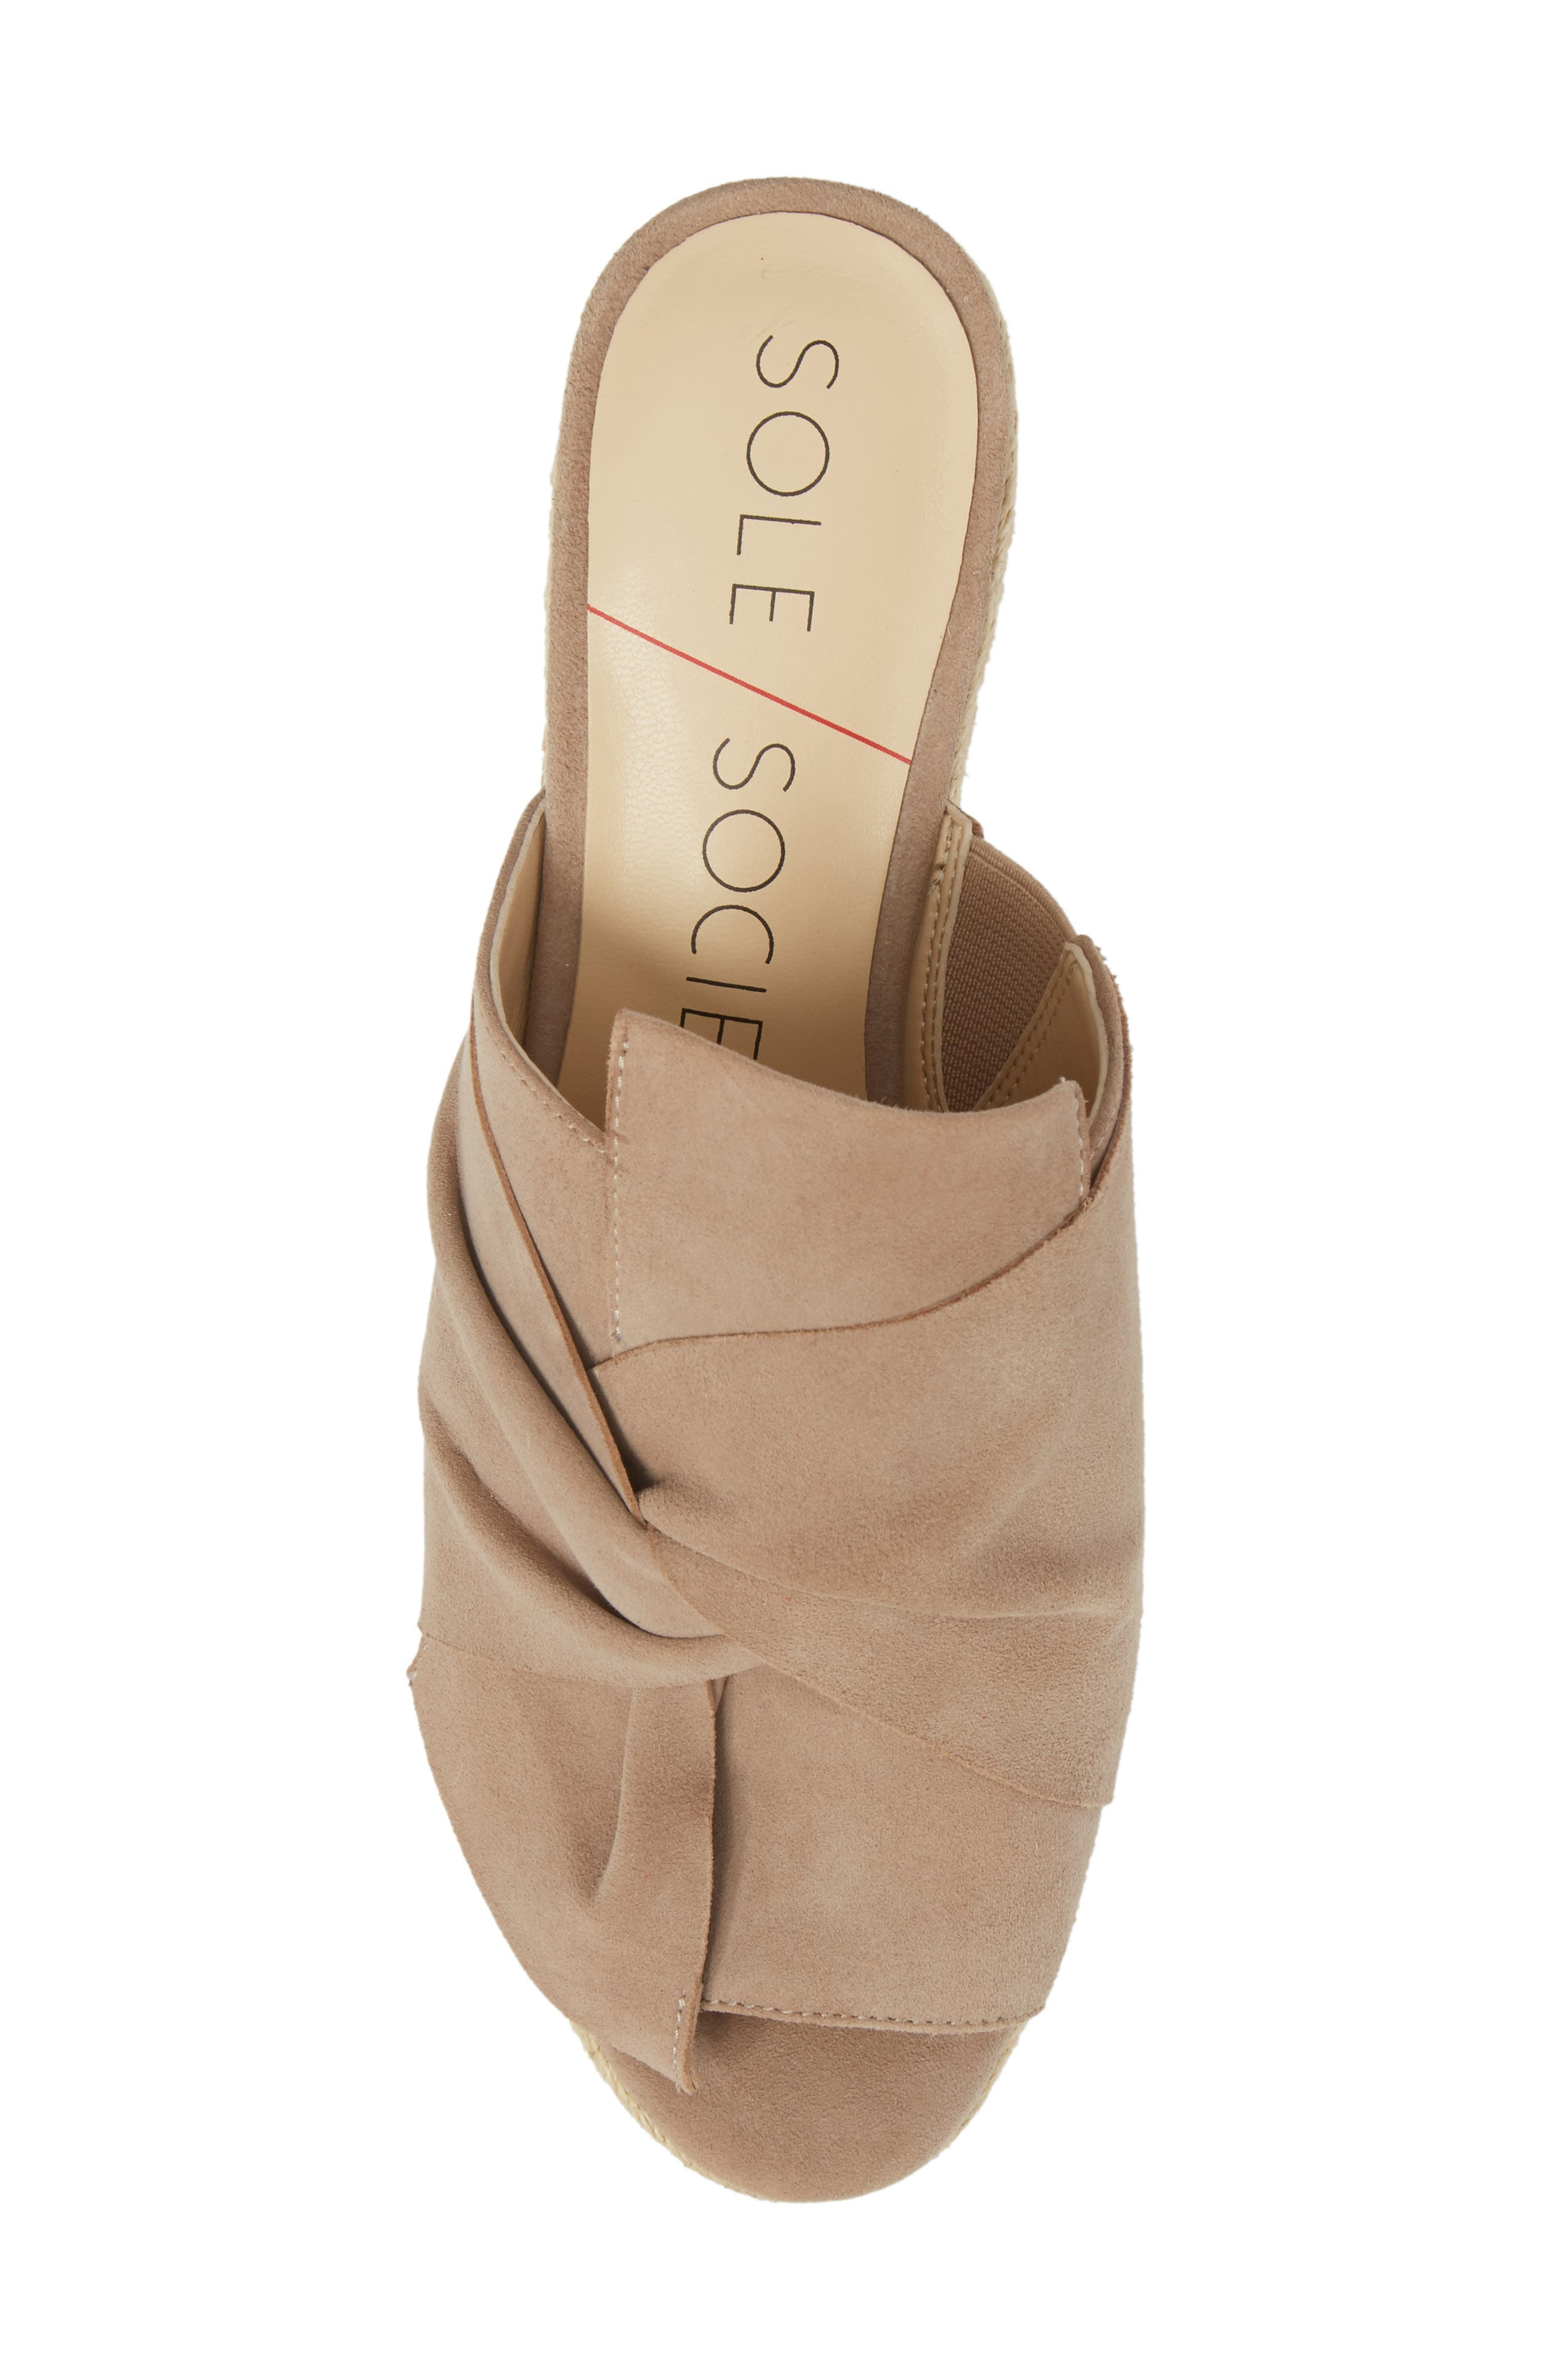 SOLE SOCIETY, Carima Espadrille Wedge, Alternate thumbnail 5, color, TAUPE FABRIC